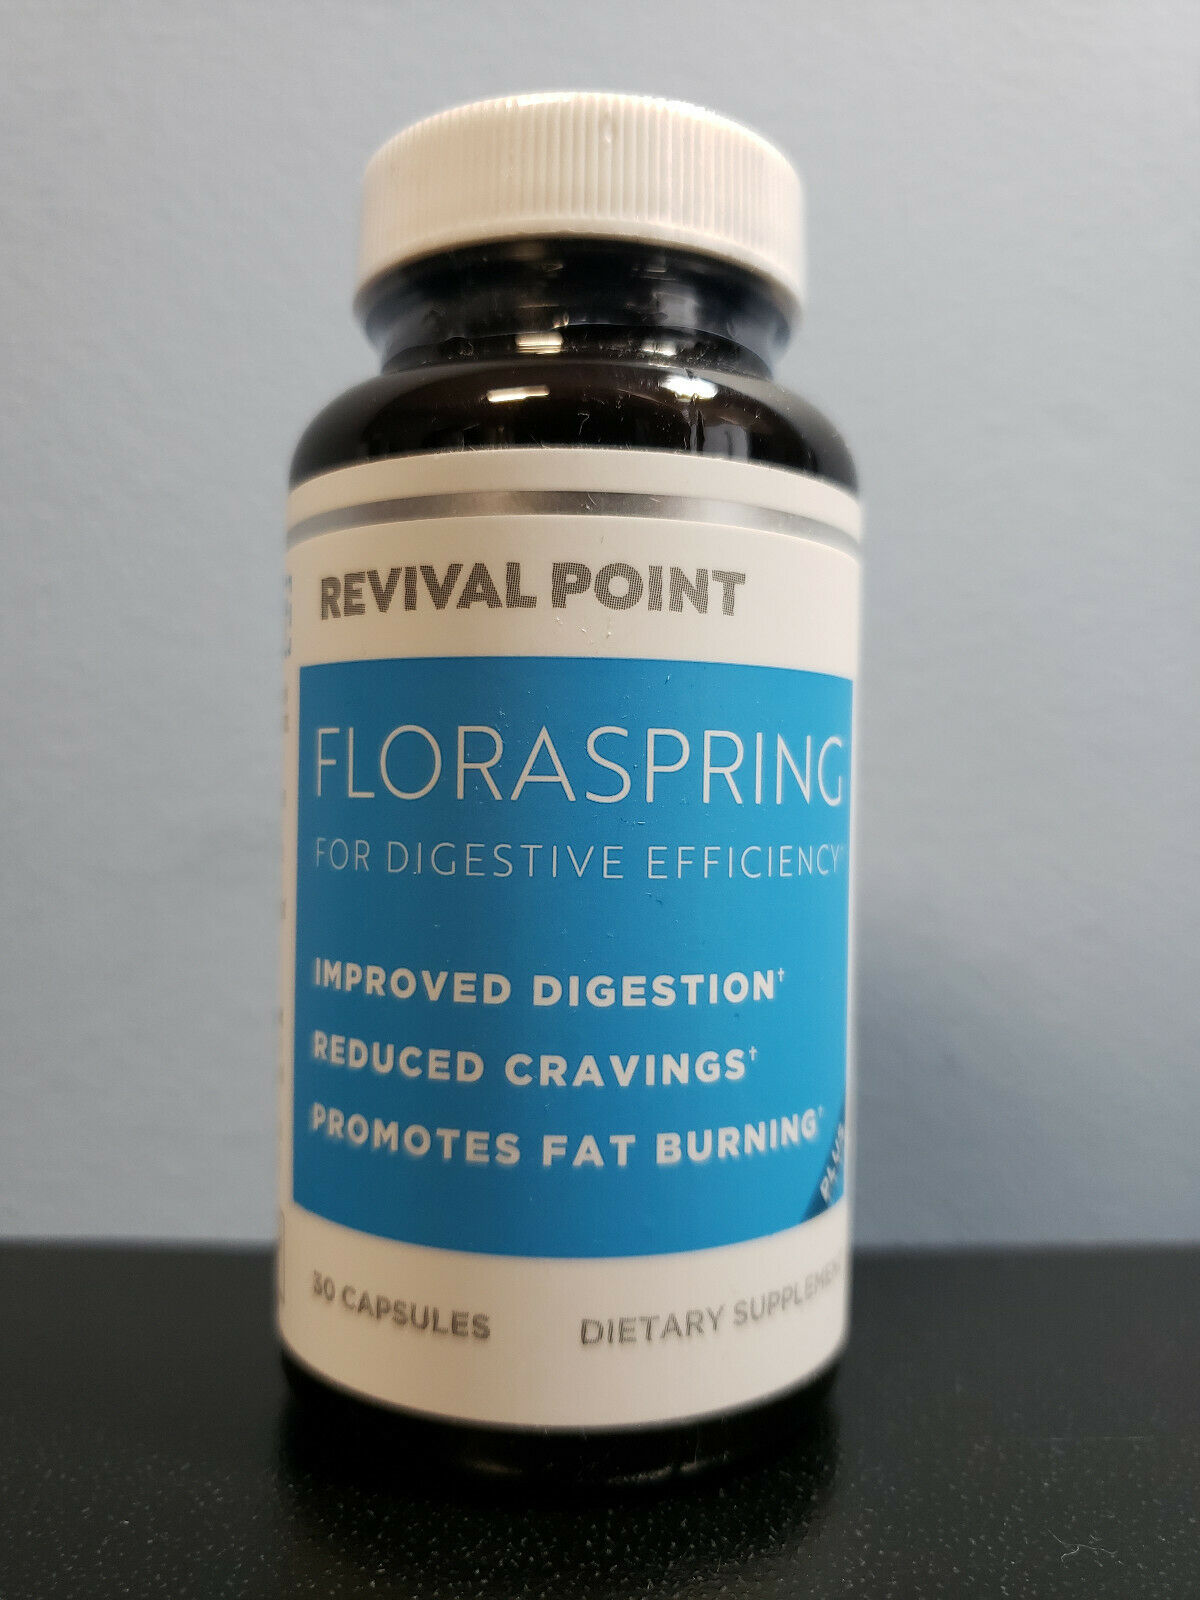 Revival Point Floraspring for Digestive Efficiency 30 Capsules - New! Exp 2/2022